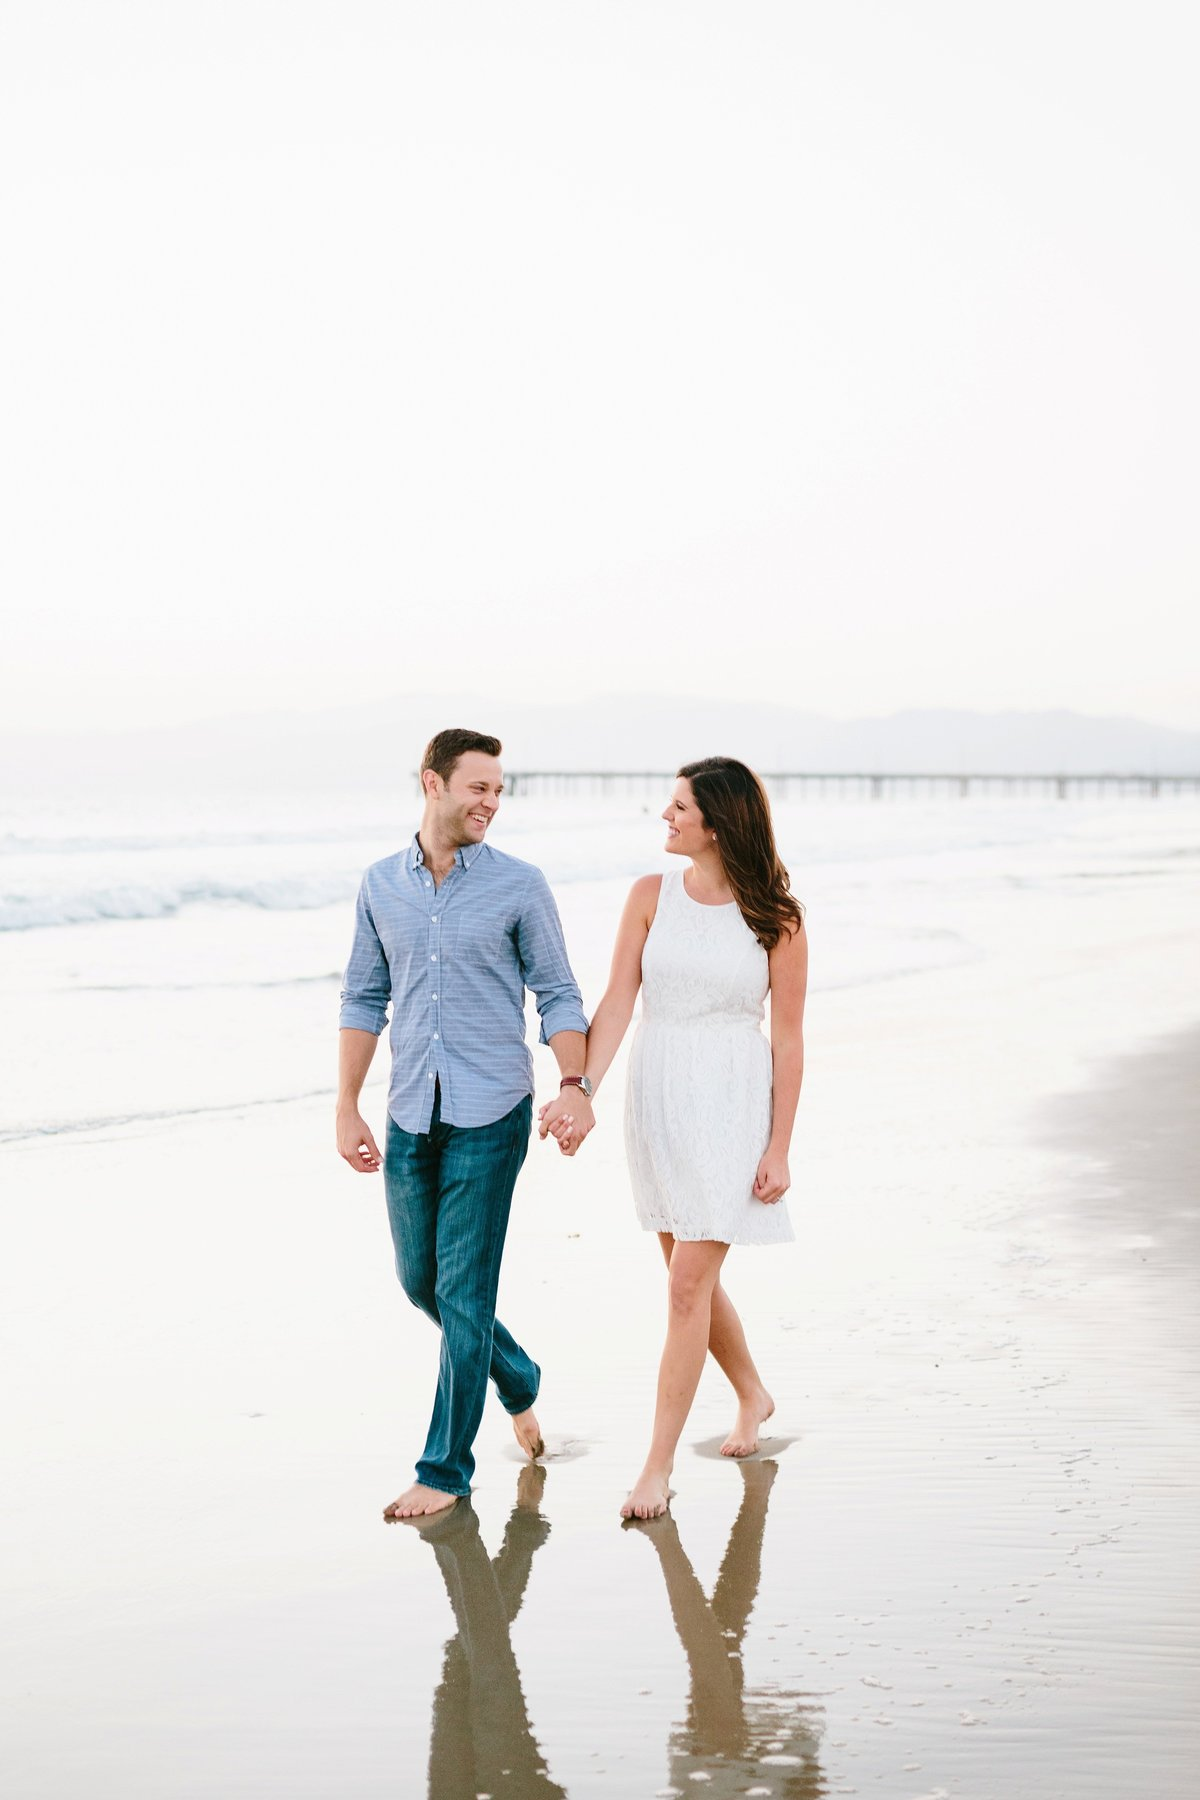 Best California Engagement Photographer_Jodee Debes Photography_064